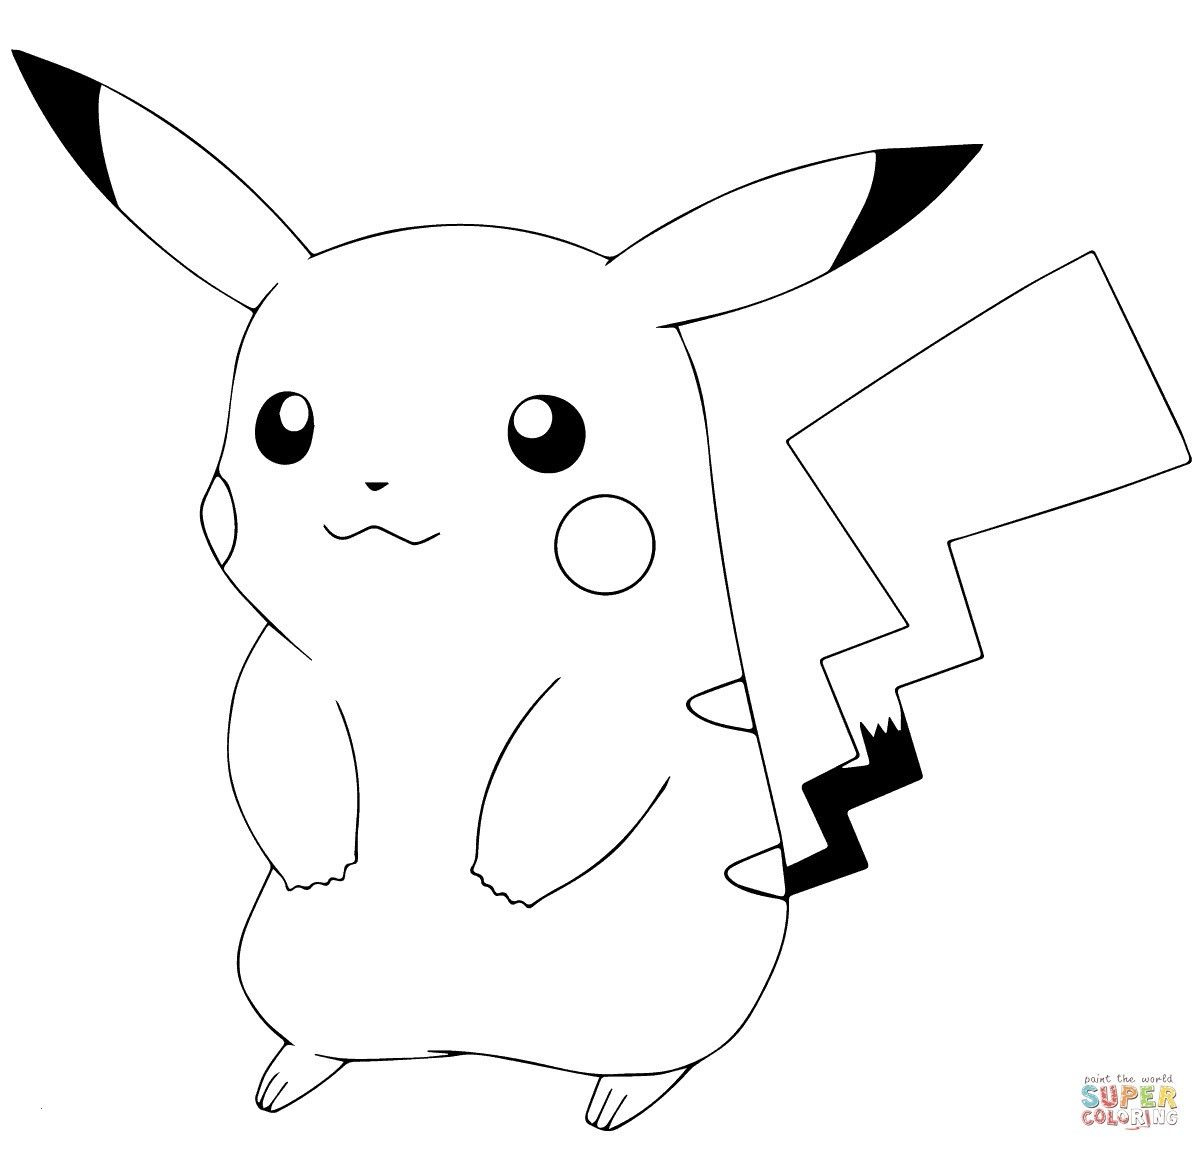 pikachu face coloring page pikachu line drawing at getdrawings free download pikachu page face coloring